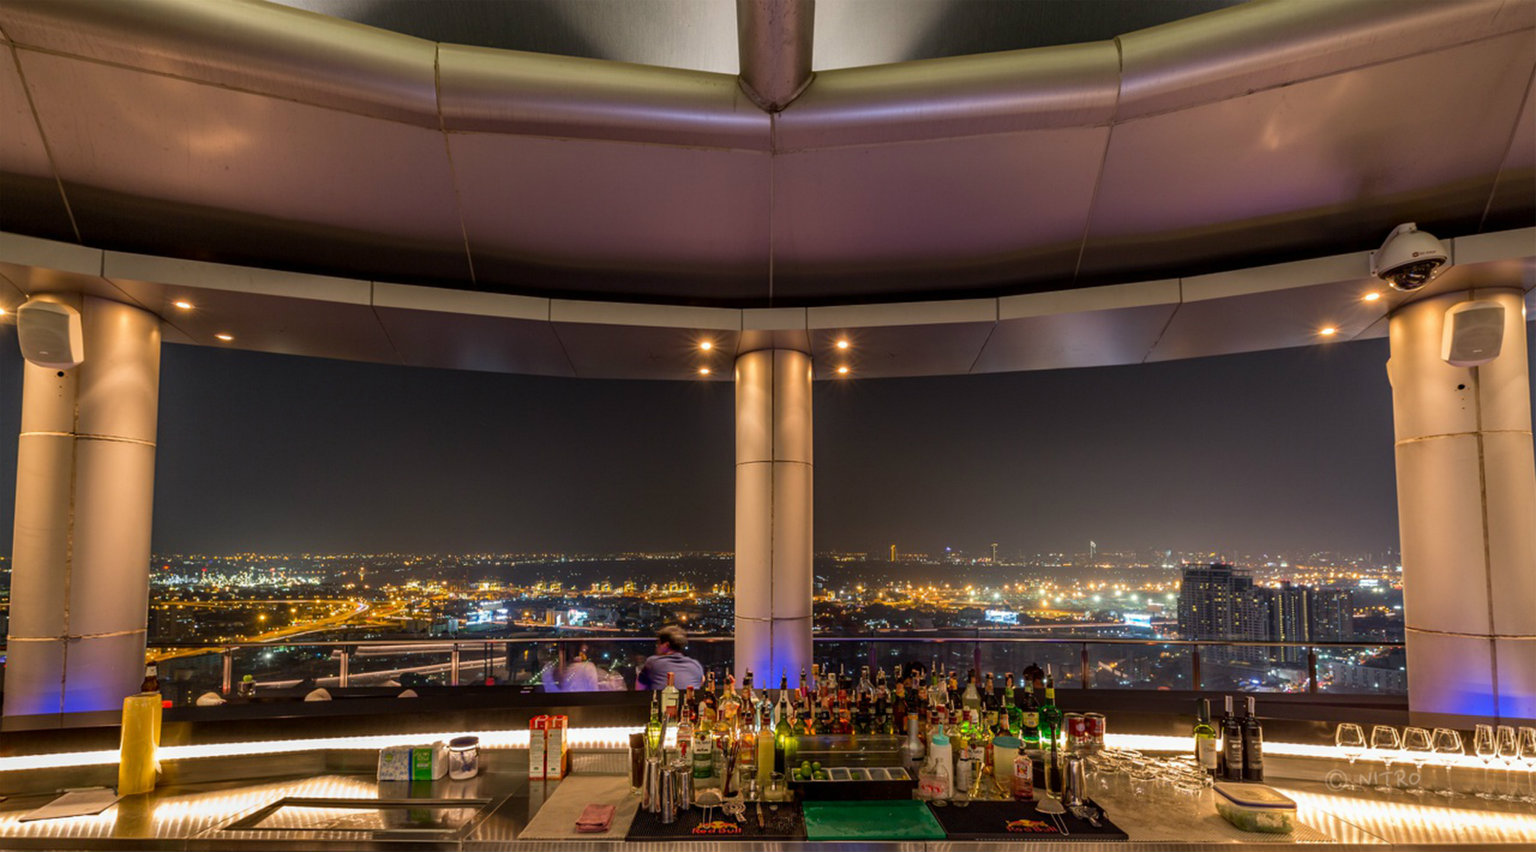 The bar at Cielo Sky Bar & Restaurant in Bangkok, Thailand